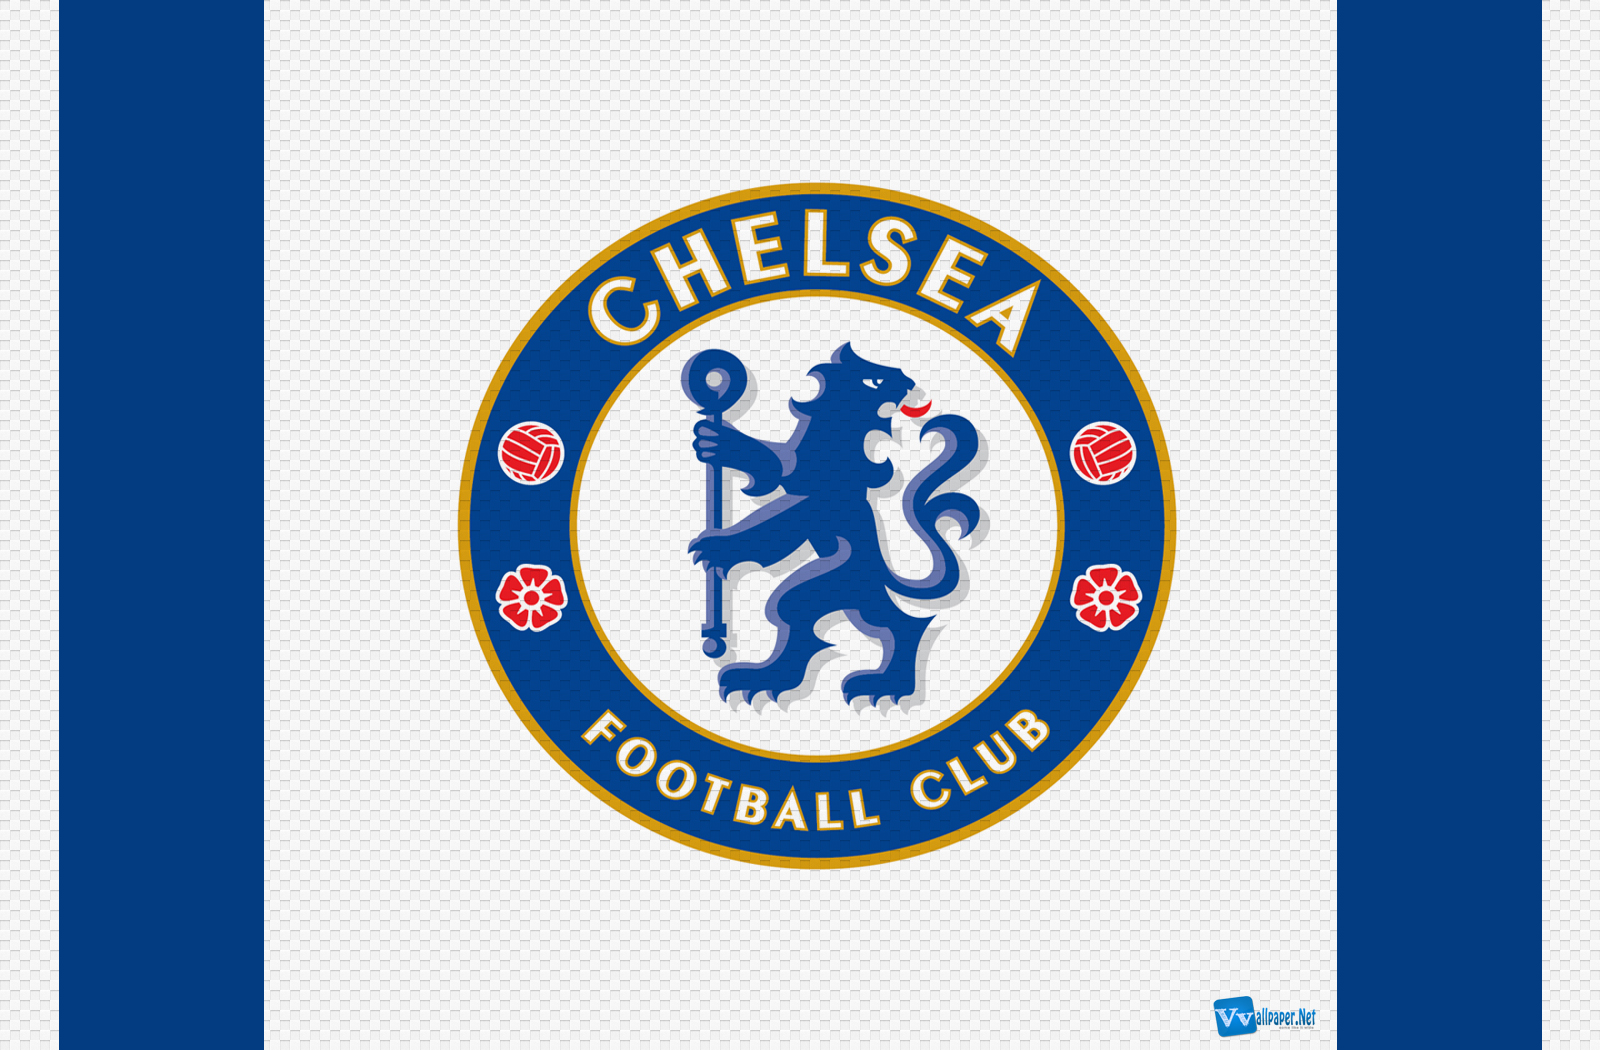 Central wallpaper chelsea football club logo hd wallpapers chelsea fc logo soccer wallpaper in hd voltagebd